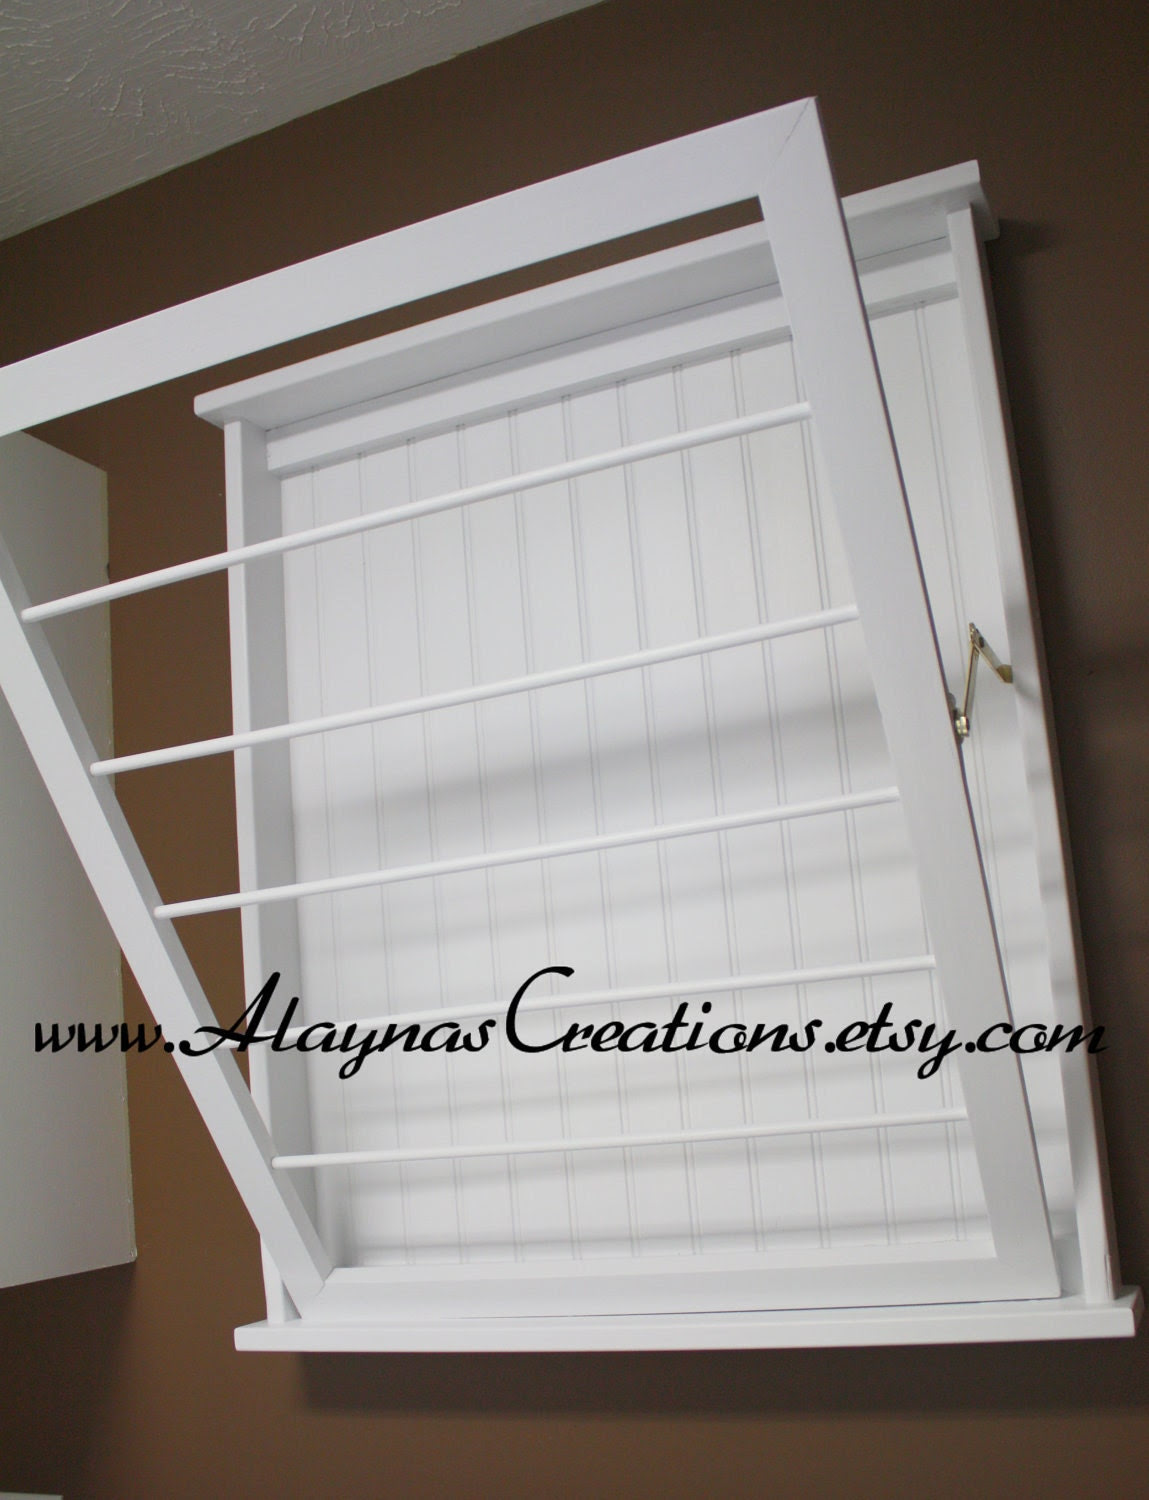 Laundry Room Drying Racks Wall Mounted